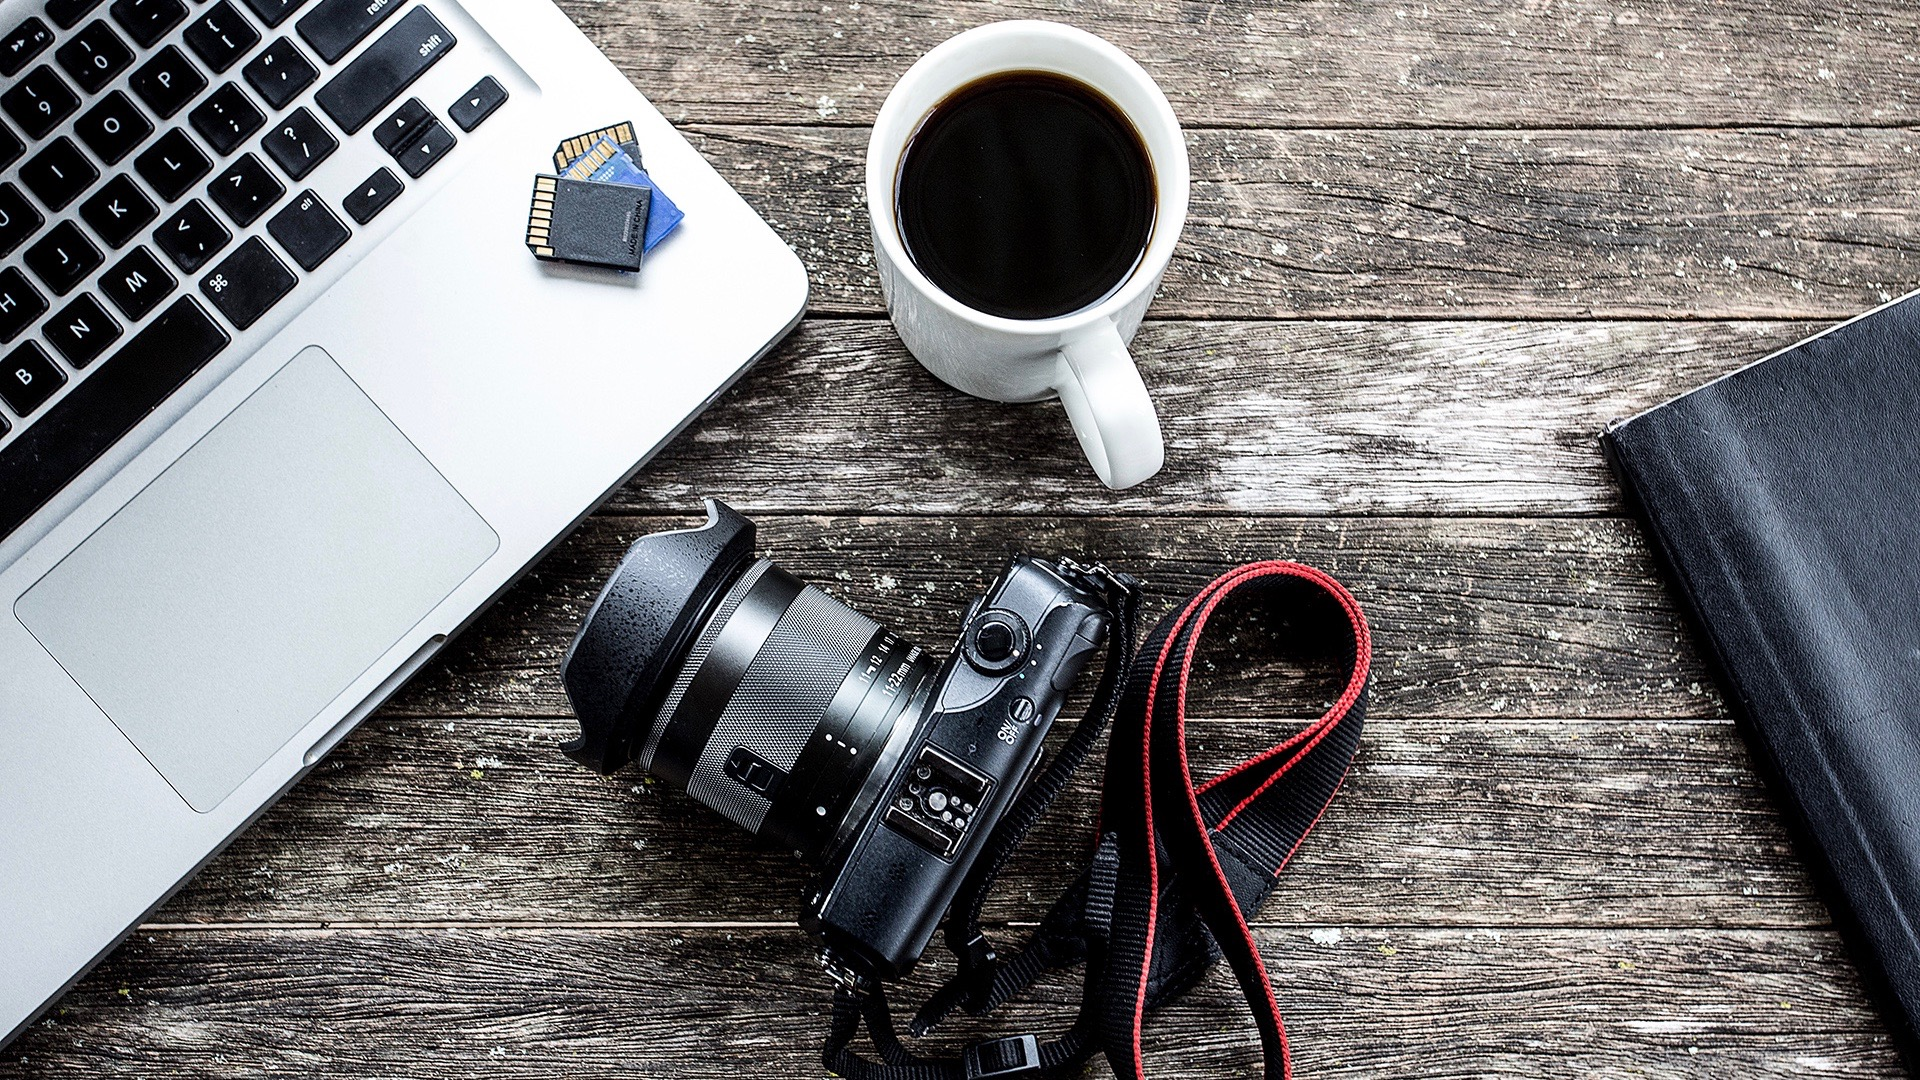 The Best Photo Editing Software For Photographers in 2020